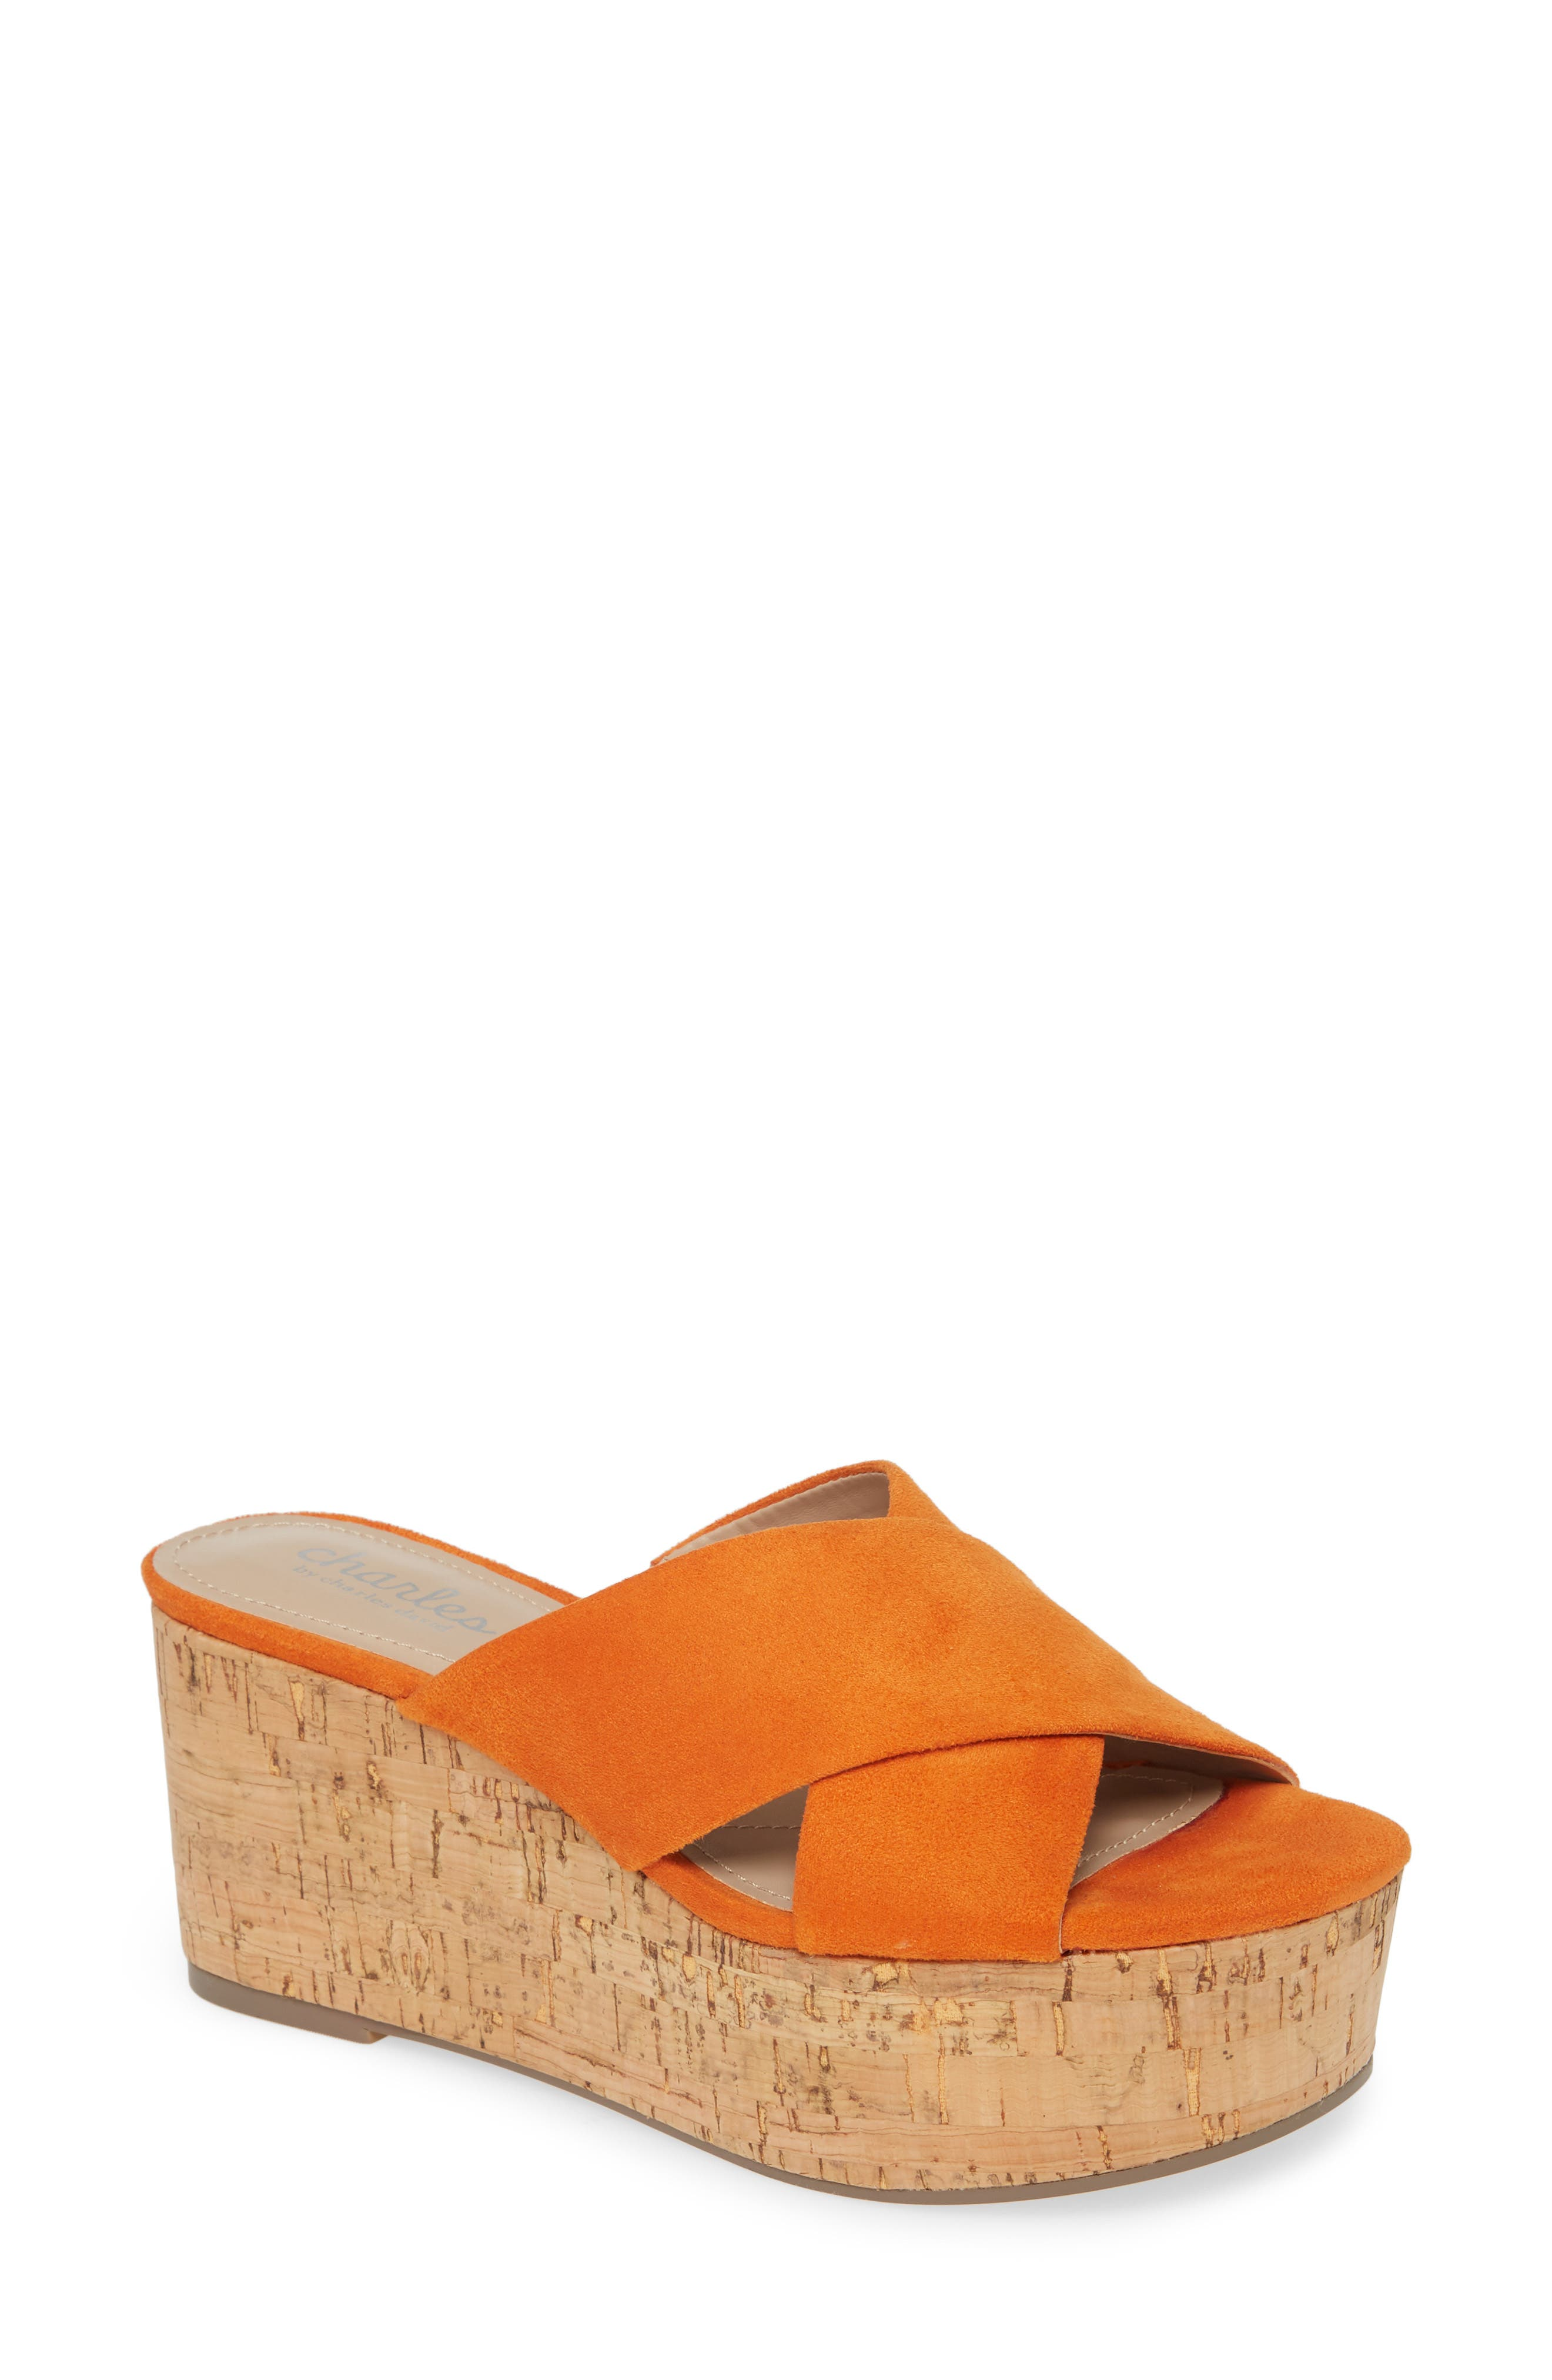 Layers of cork fashion the heel and platform of a cross-strap sandal made with a foam-cushioned footbed. Style Name: Charles By Charles David Civil Platform Wedge Slide Sandal (Women). Style Number: 5994984. Available in stores.